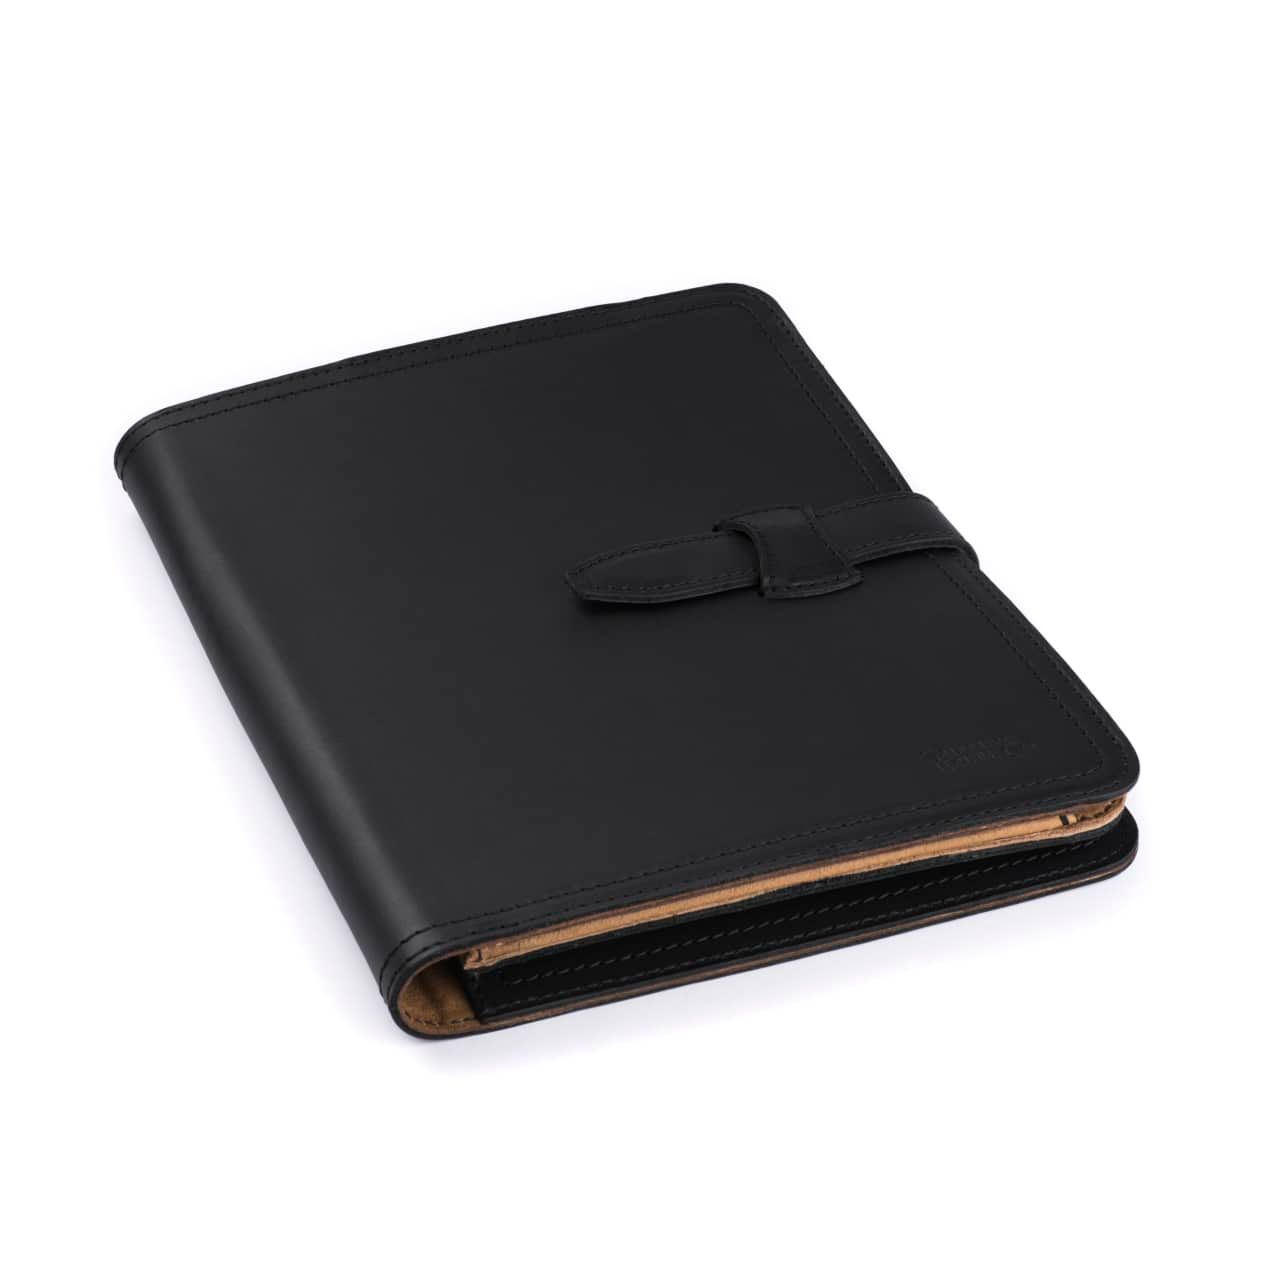 Leather Tablet Notepad Holder Closed in the Color Black